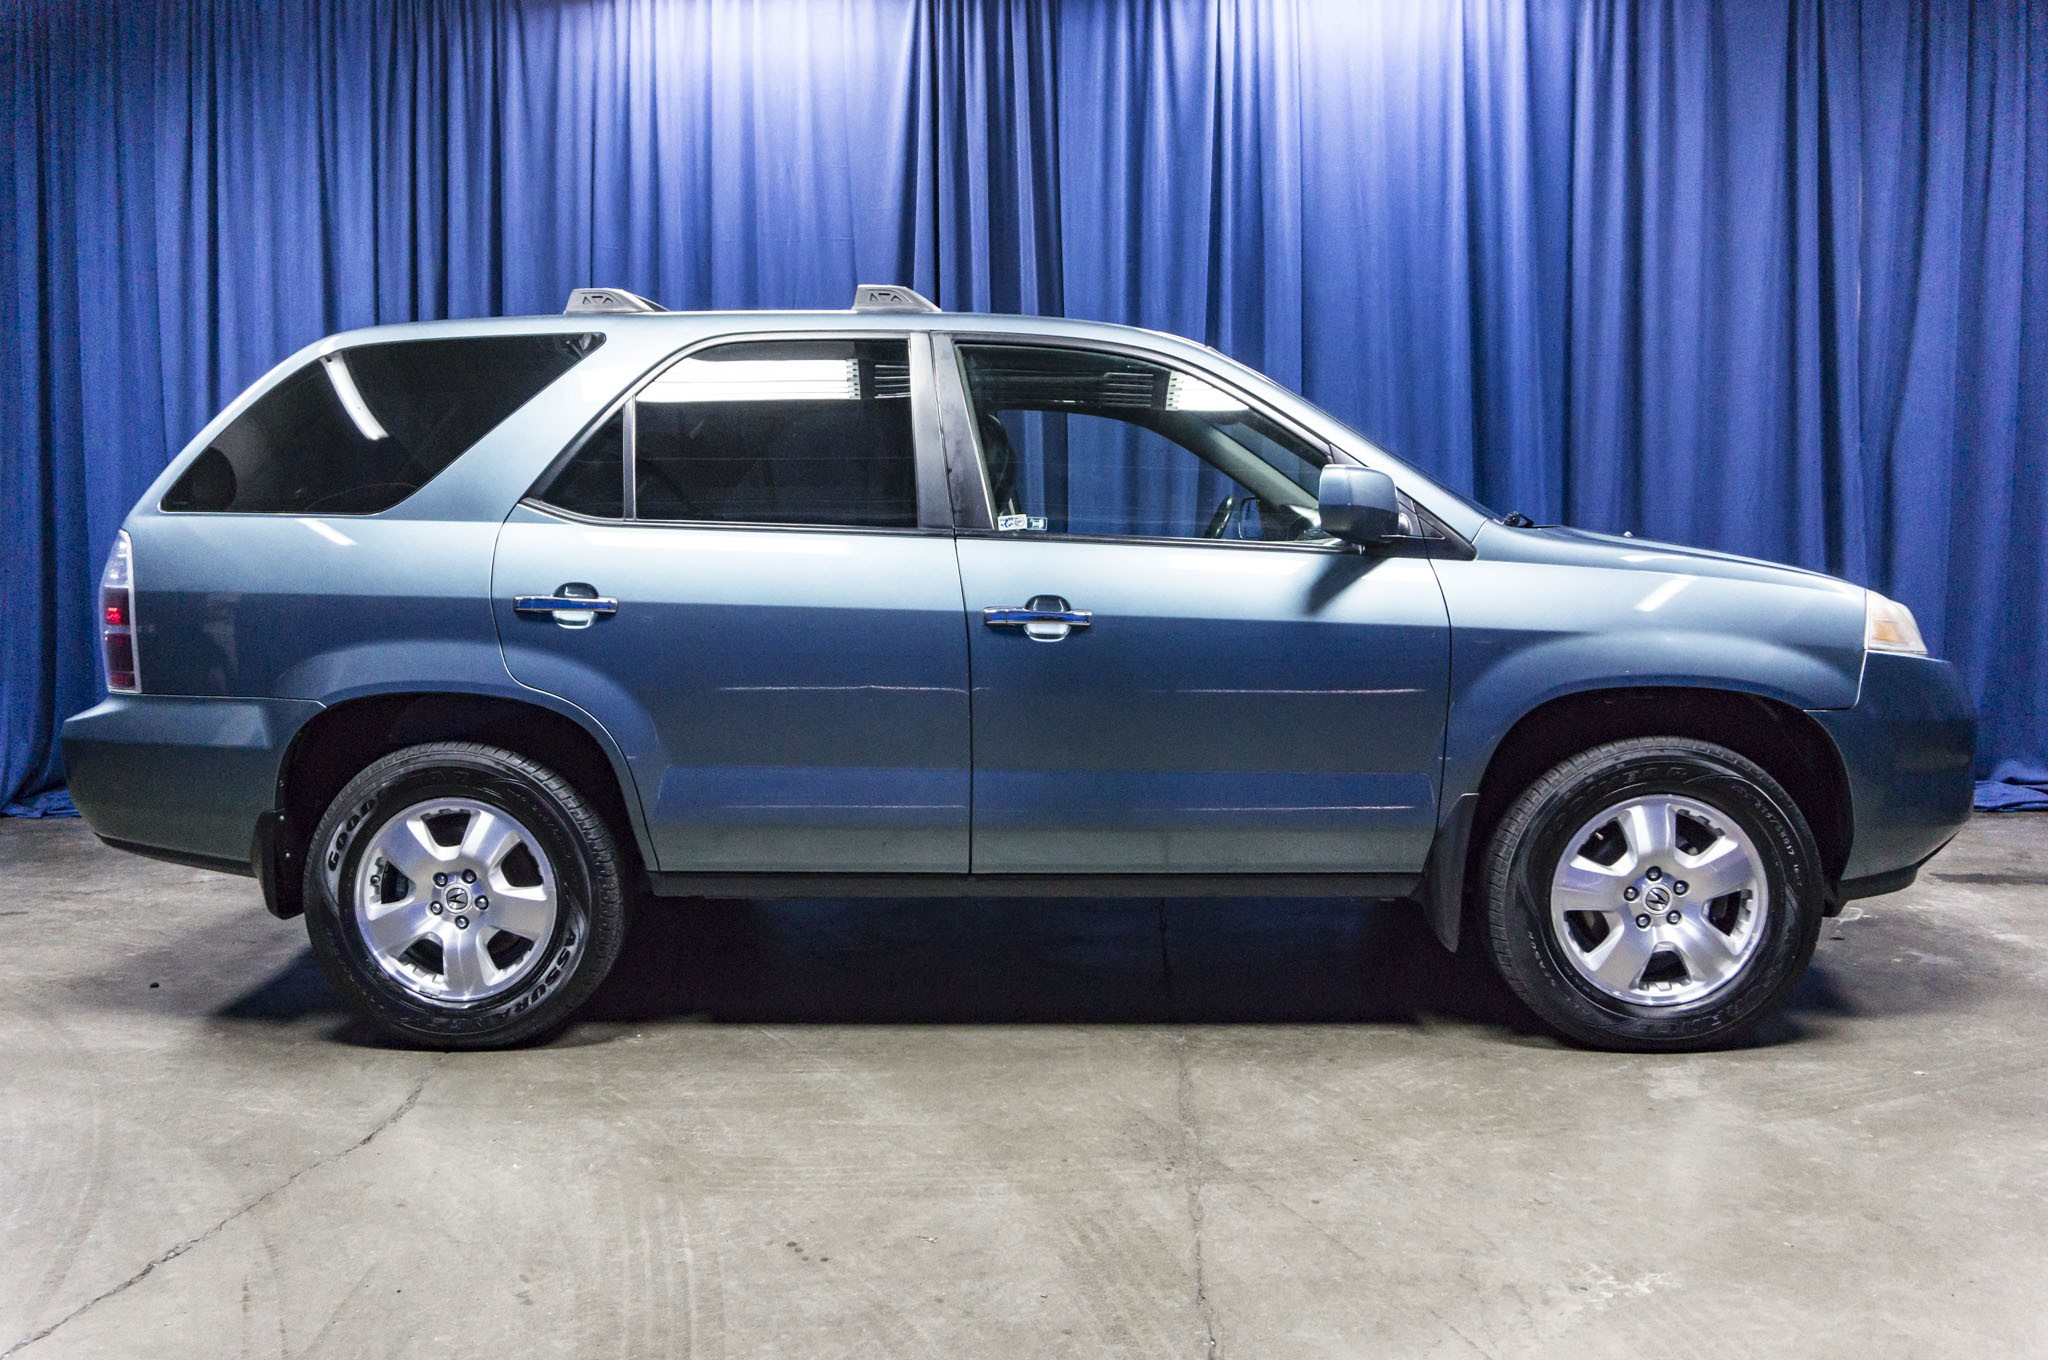 california img ca sold vehicle acura jose in for san sale image mdx